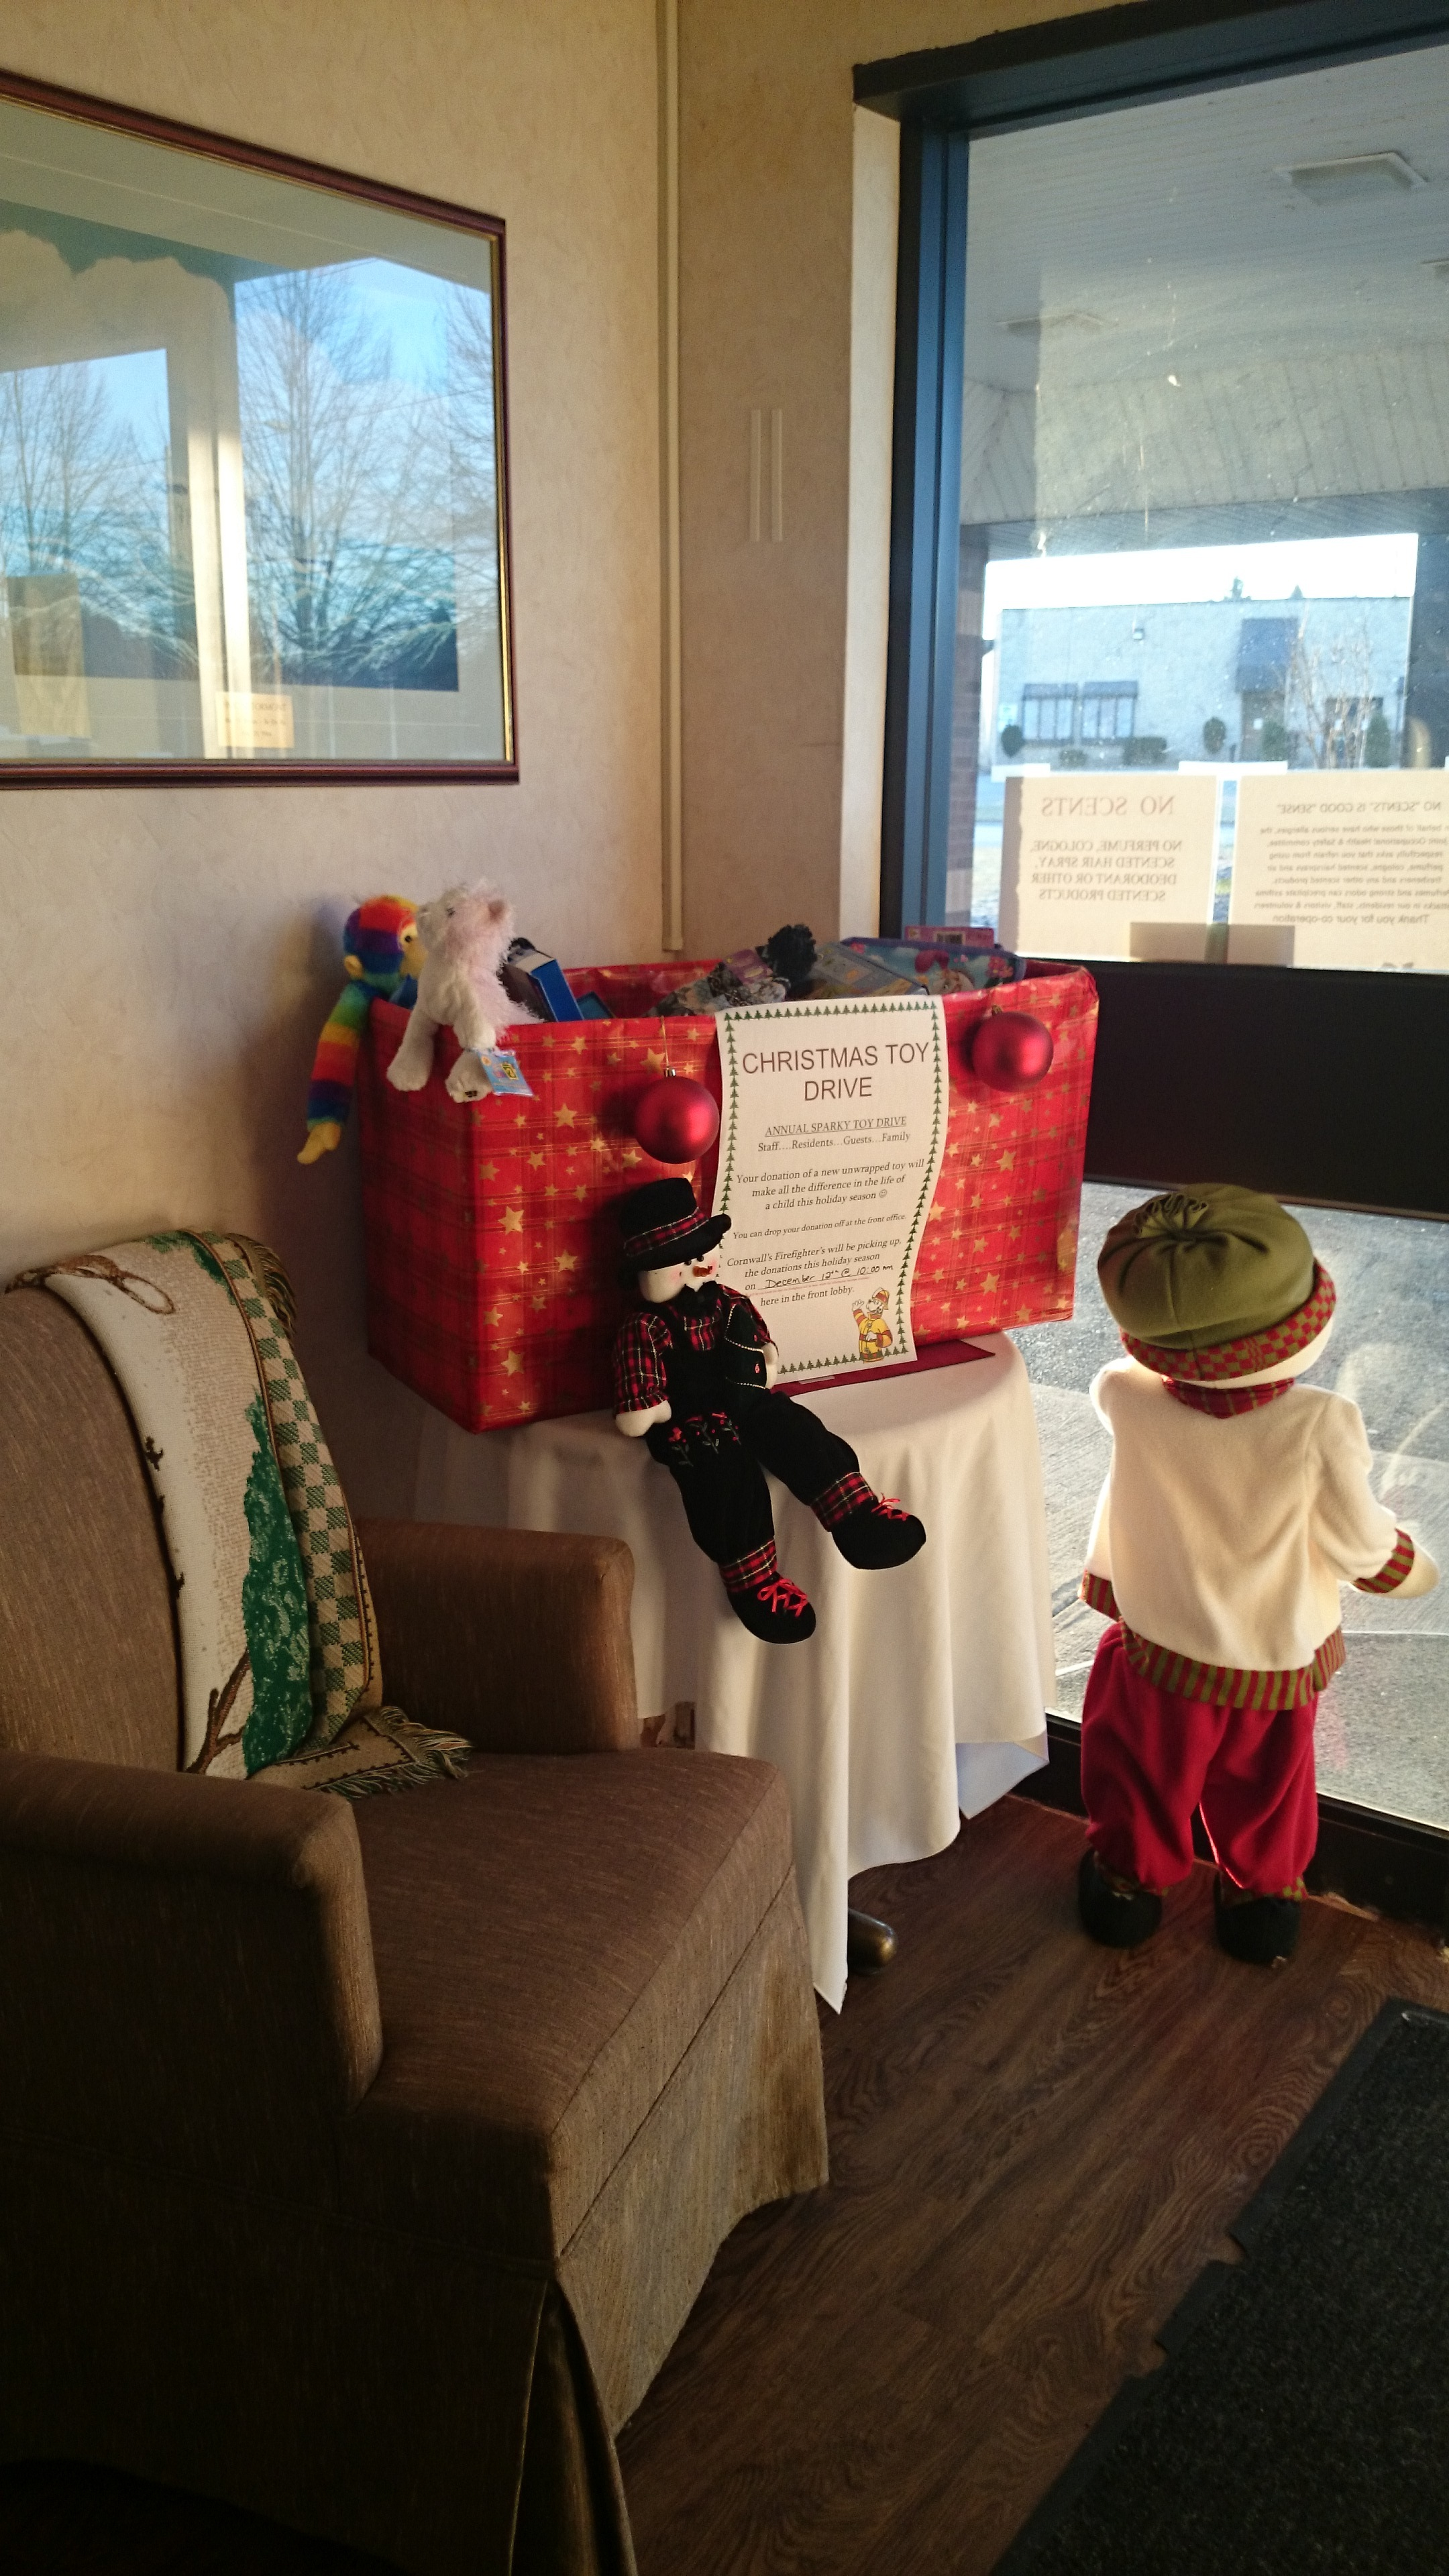 Sparks Toy Drive for Heritage Heights